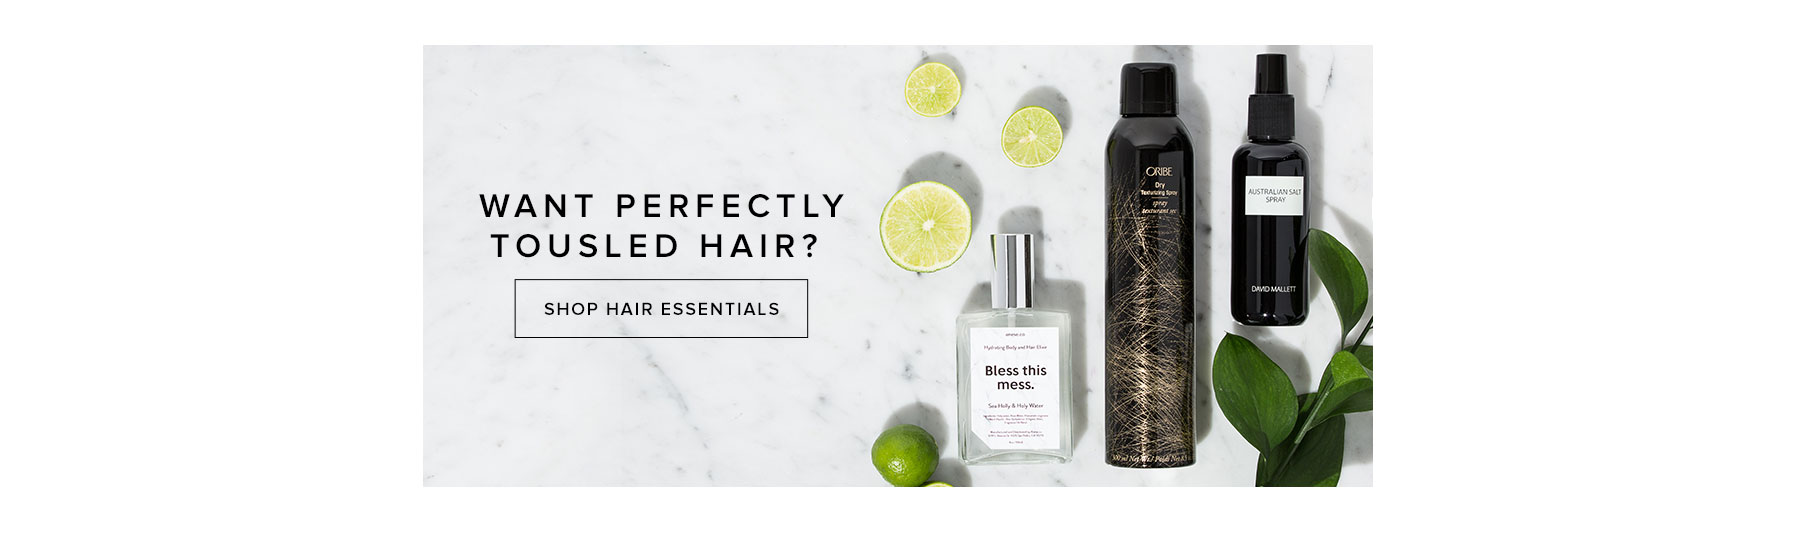 Shop Hair Essentials